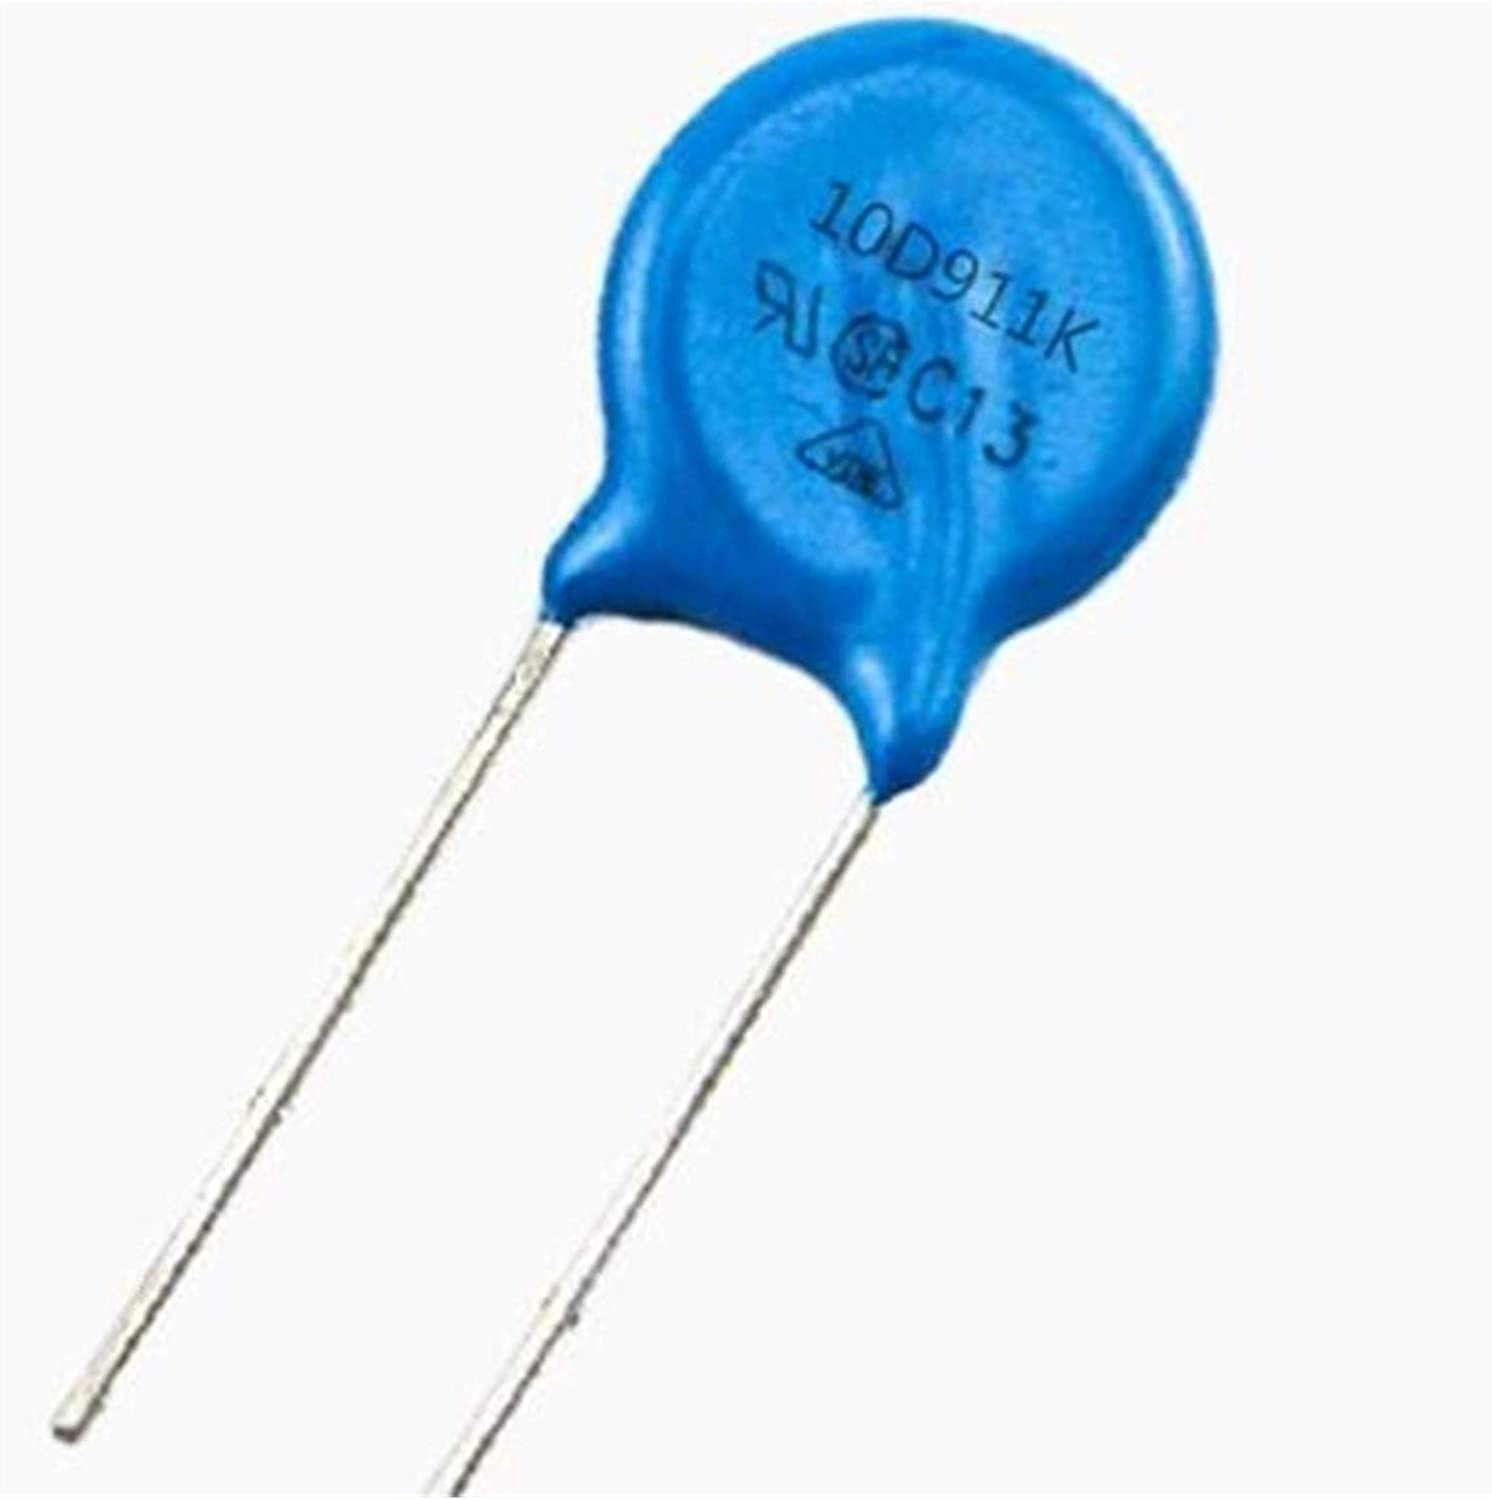 SHAXX LIUXB-X 50pcs Varistors 10D911K 910K Metal Depende Limited All items in the store price sale Voltage